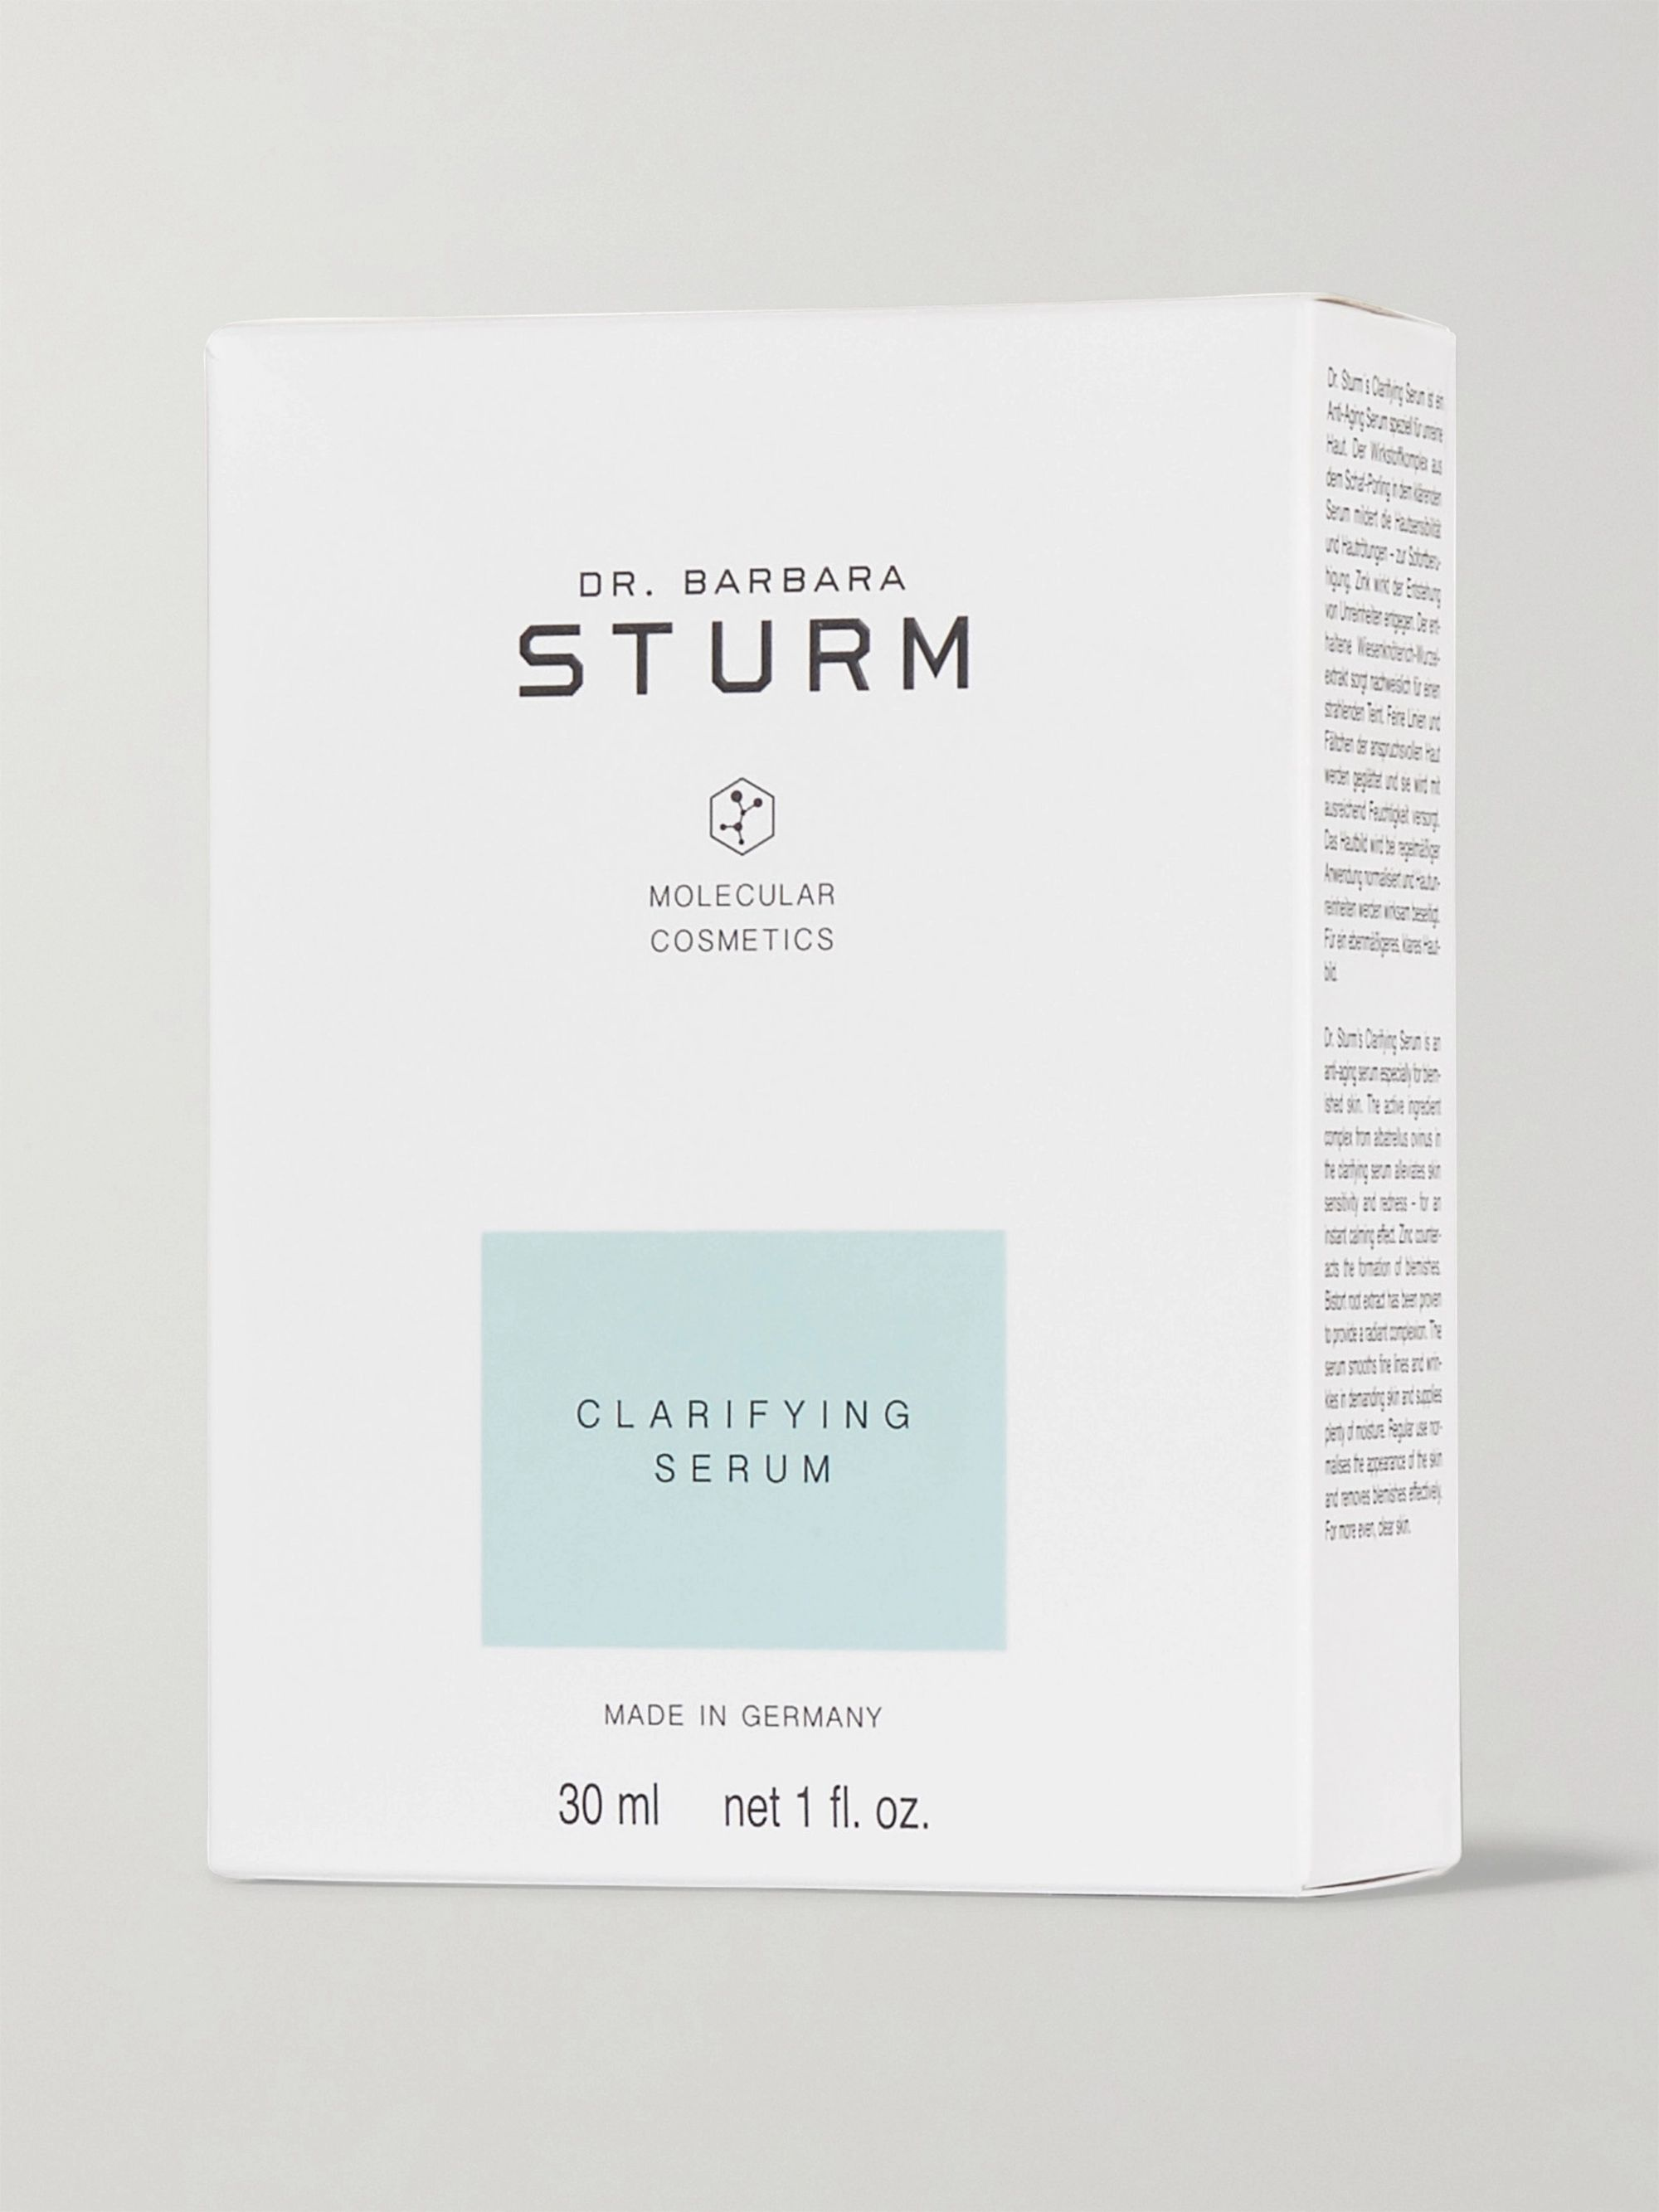 DR. BARBARA STURM Clarifying Serum, 30ml